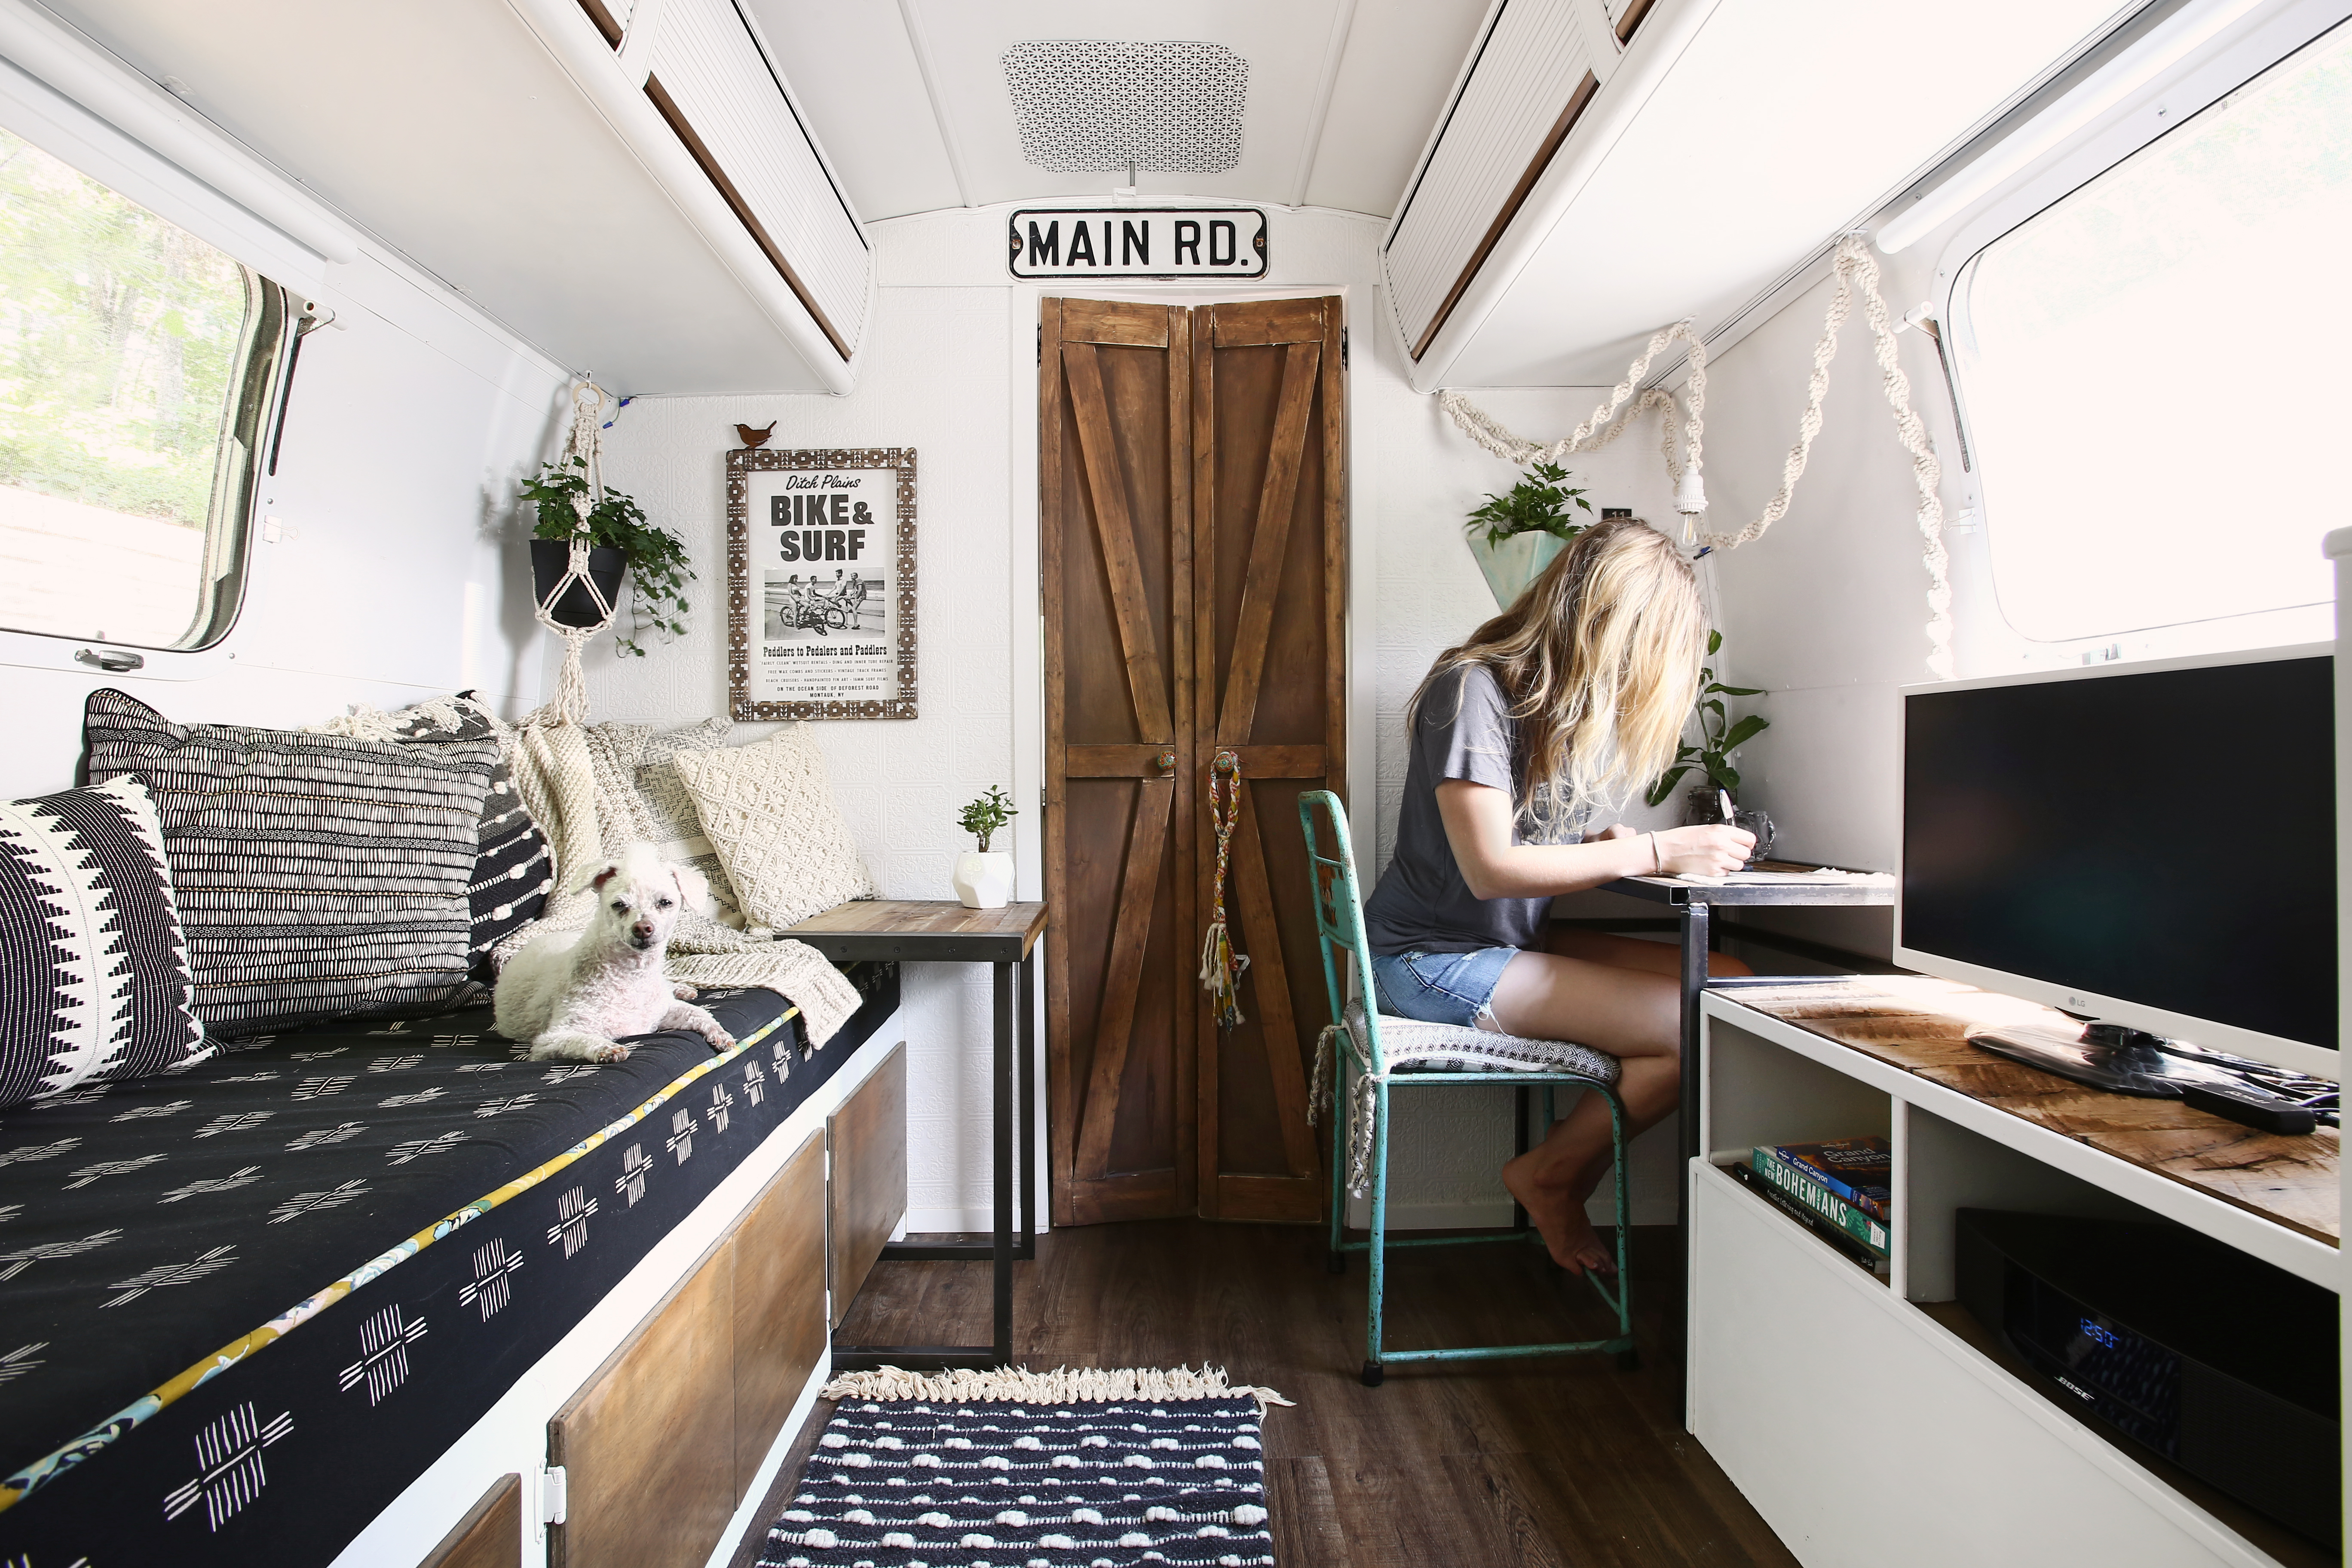 Airstream's Newly Launched Globetrotter May Inspire Wanderlust